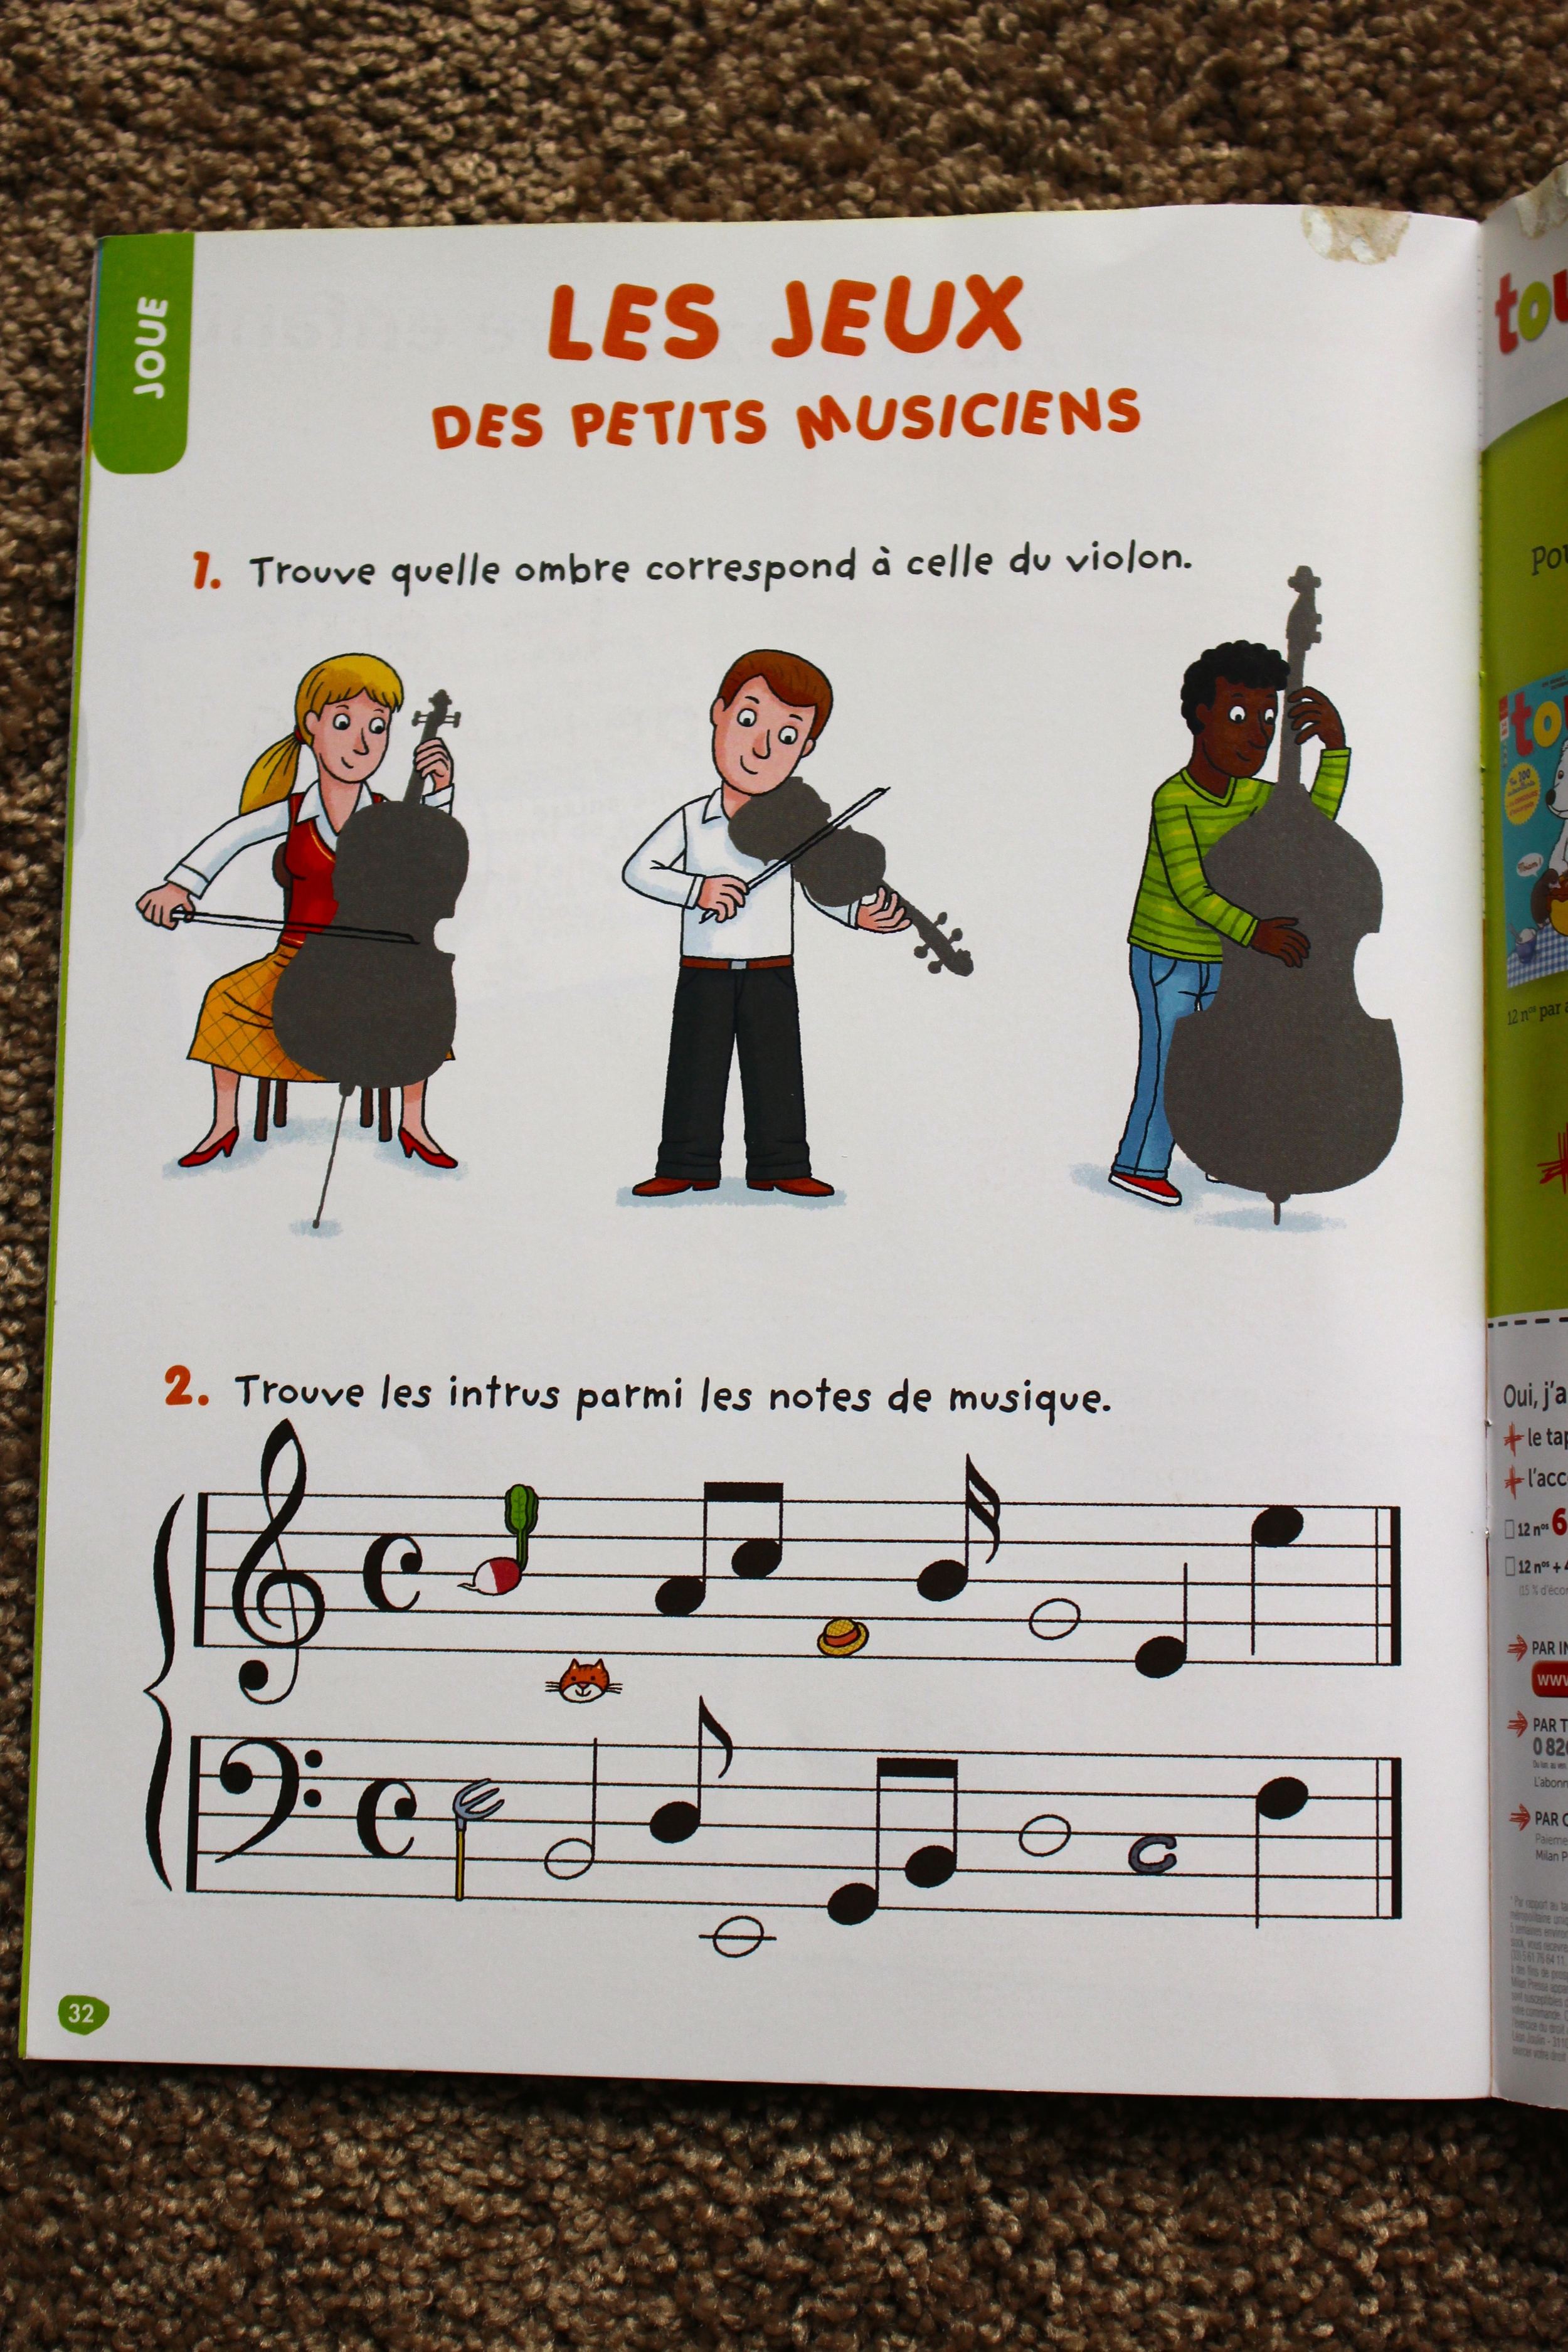 Toupie Chansons activity (one or two pages per issue)